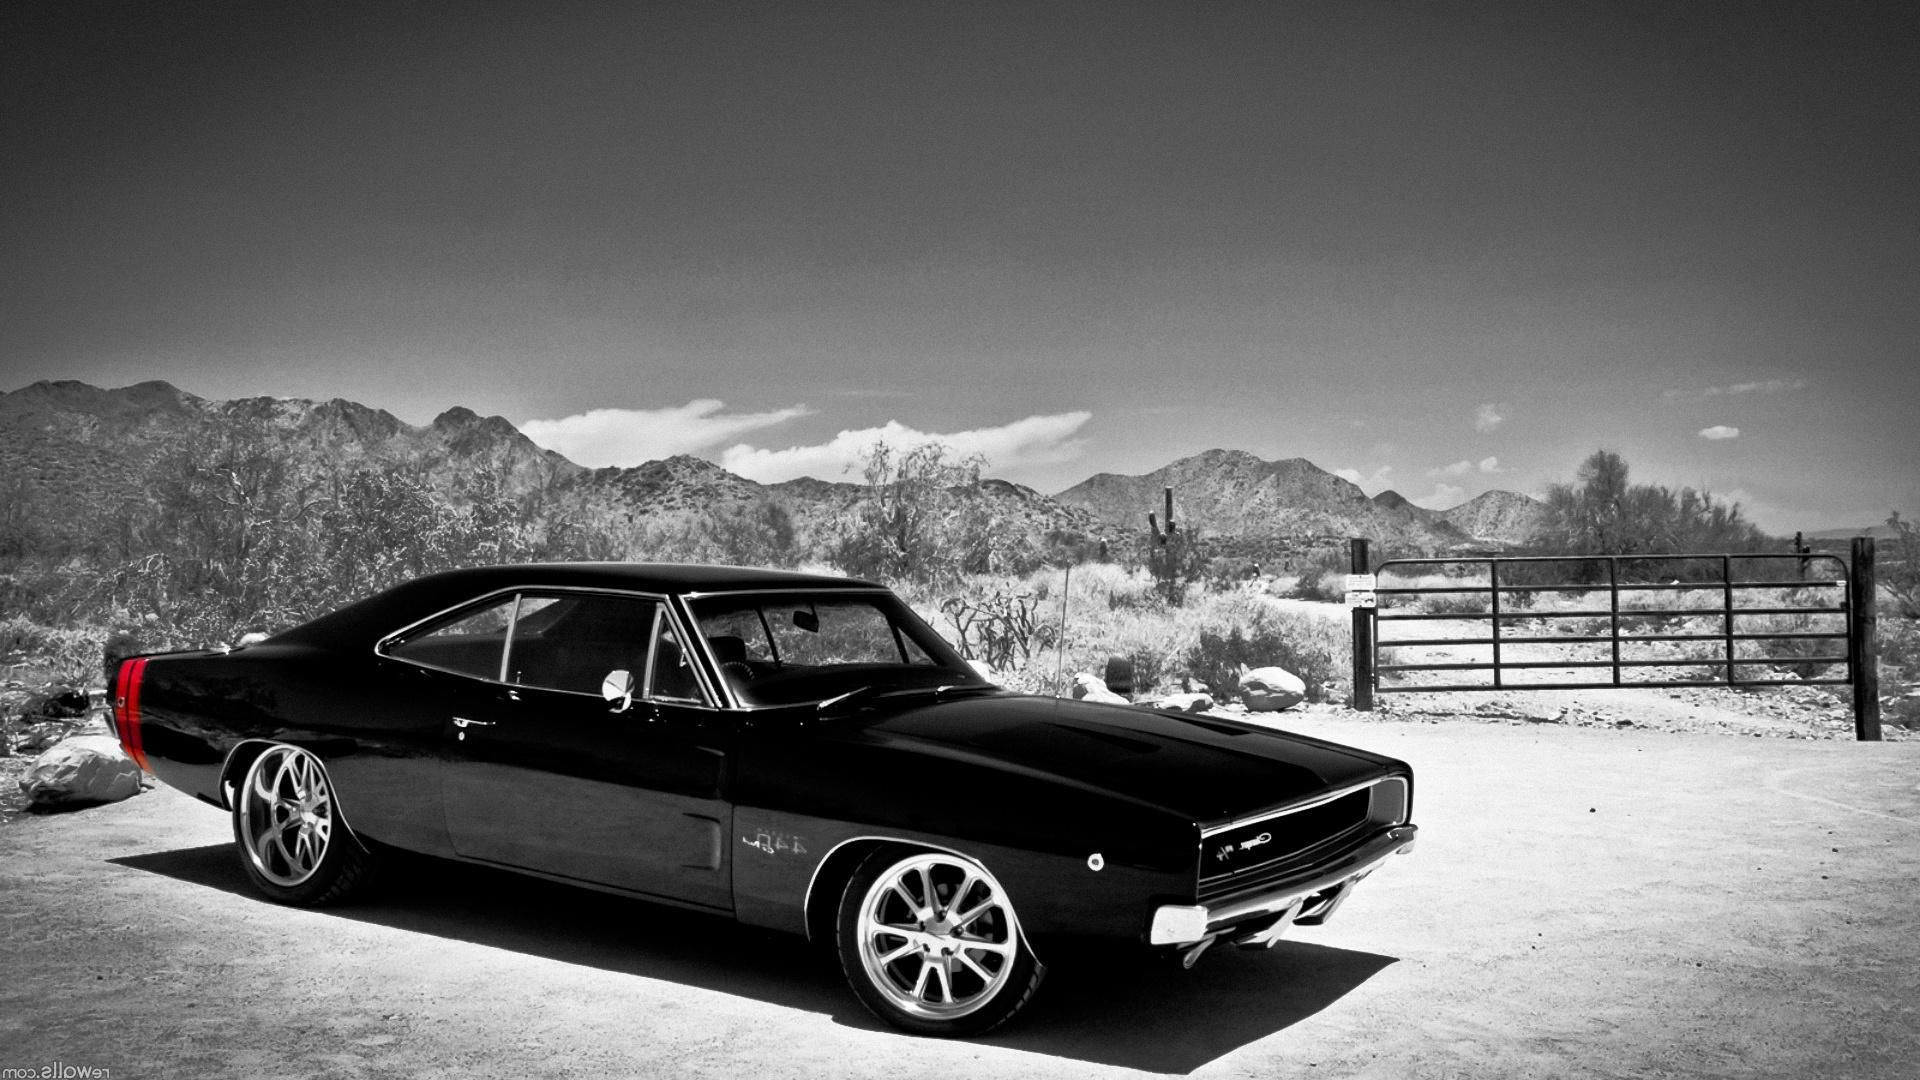 Dodge Charger Wallpapers Hd Wallpapers Pinterest Dodge